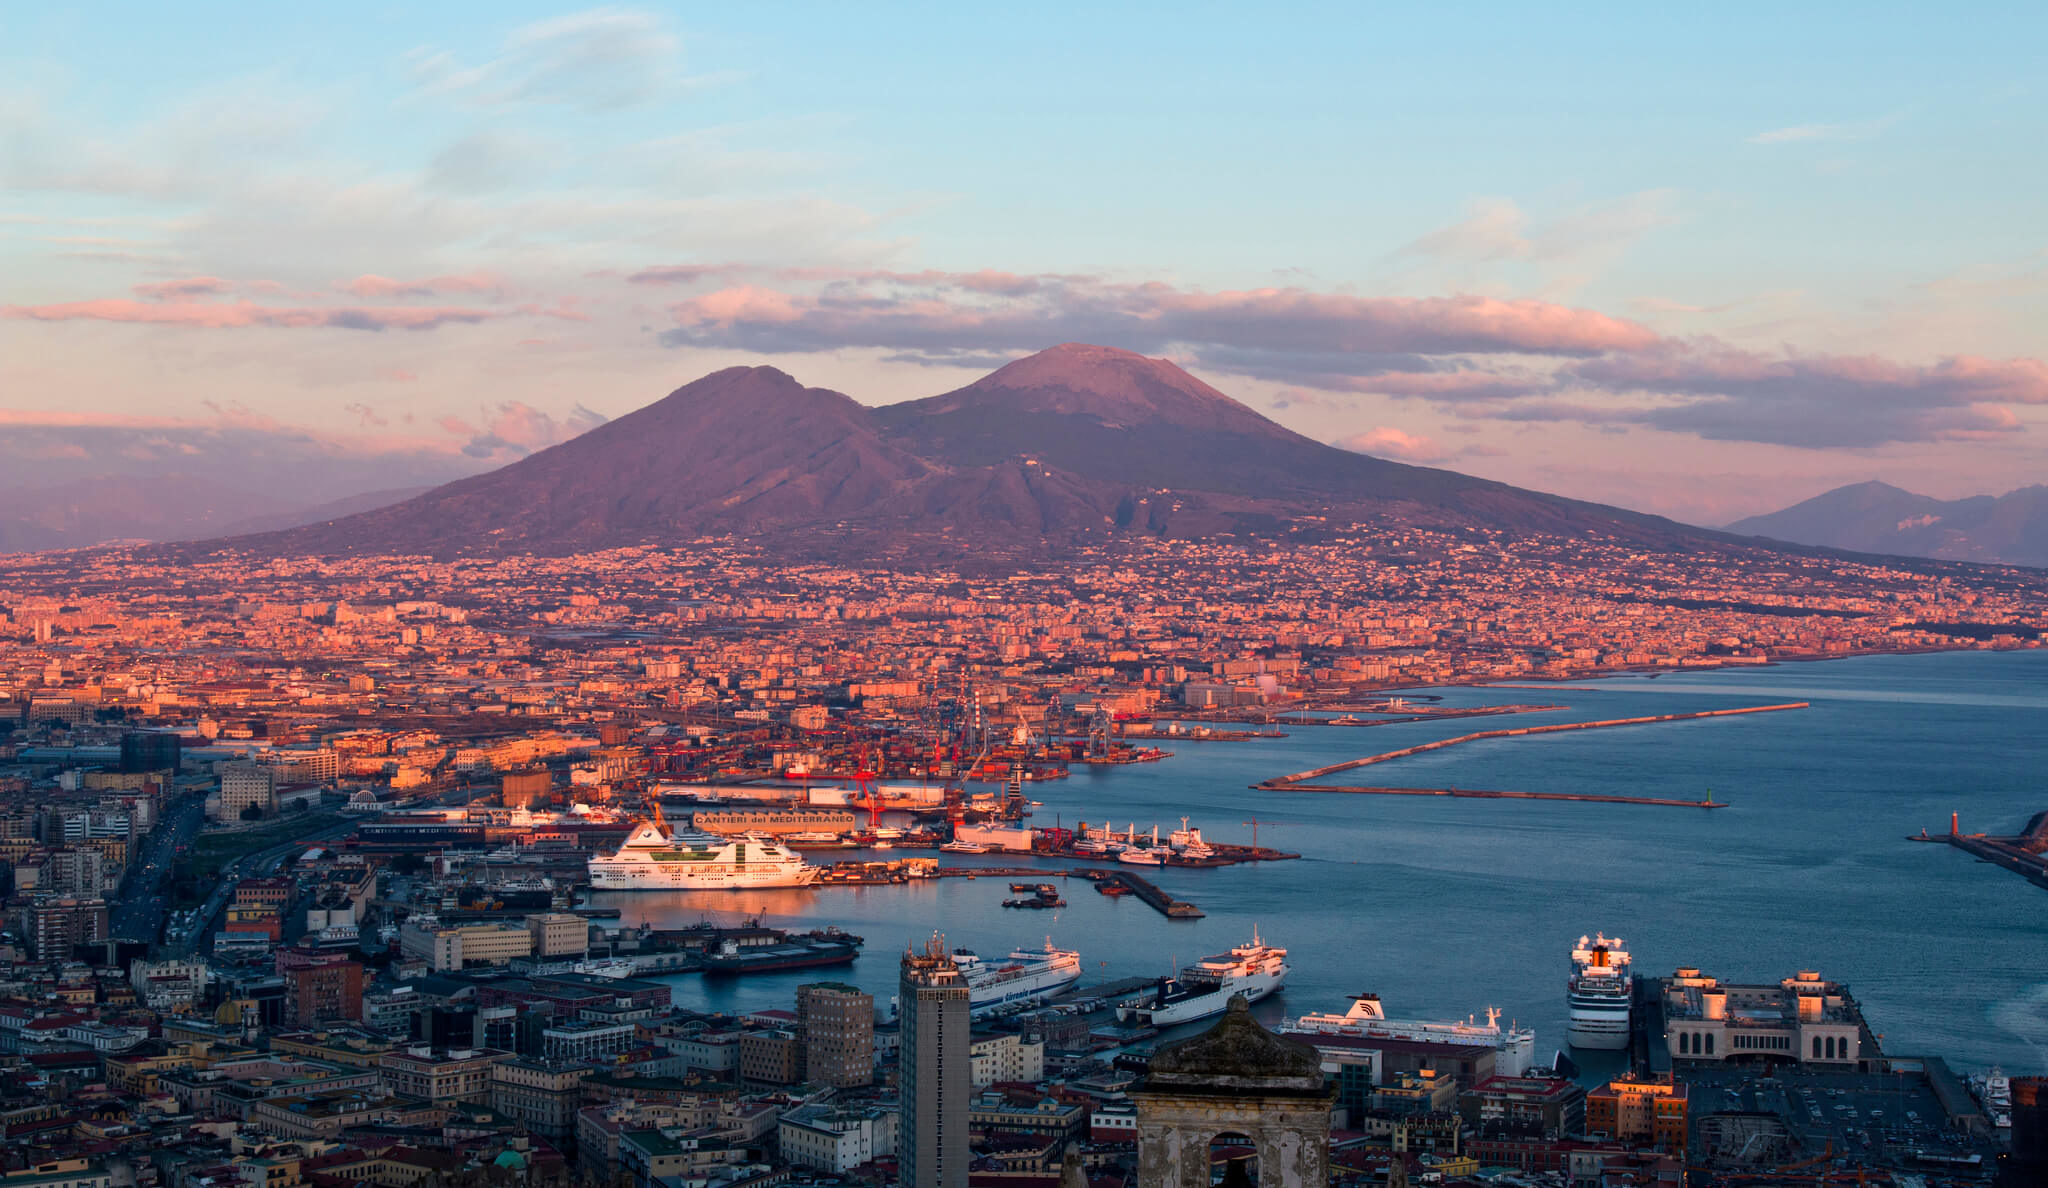 What is the history of Mount Vesuvius?